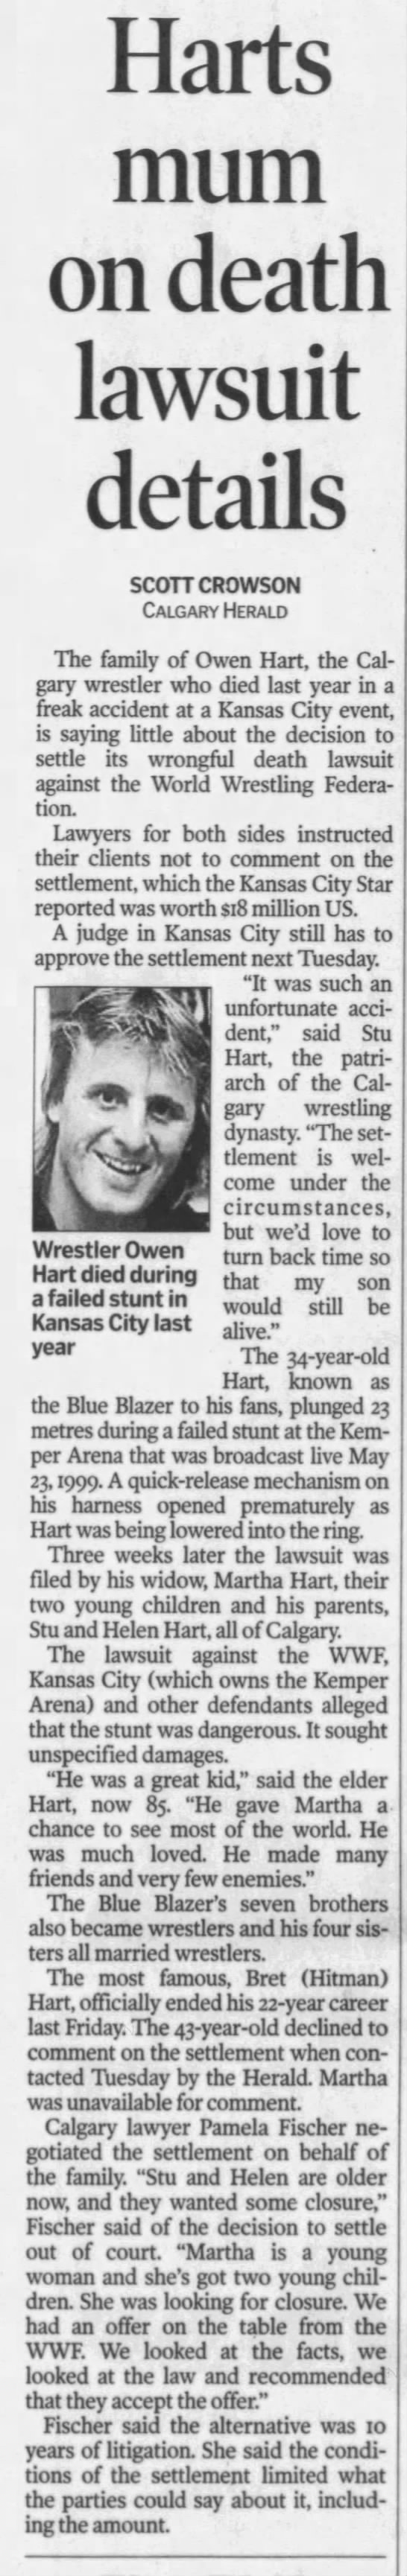 Harts mum on death lawsuit details (Calgary Herald 11/1/2000) -